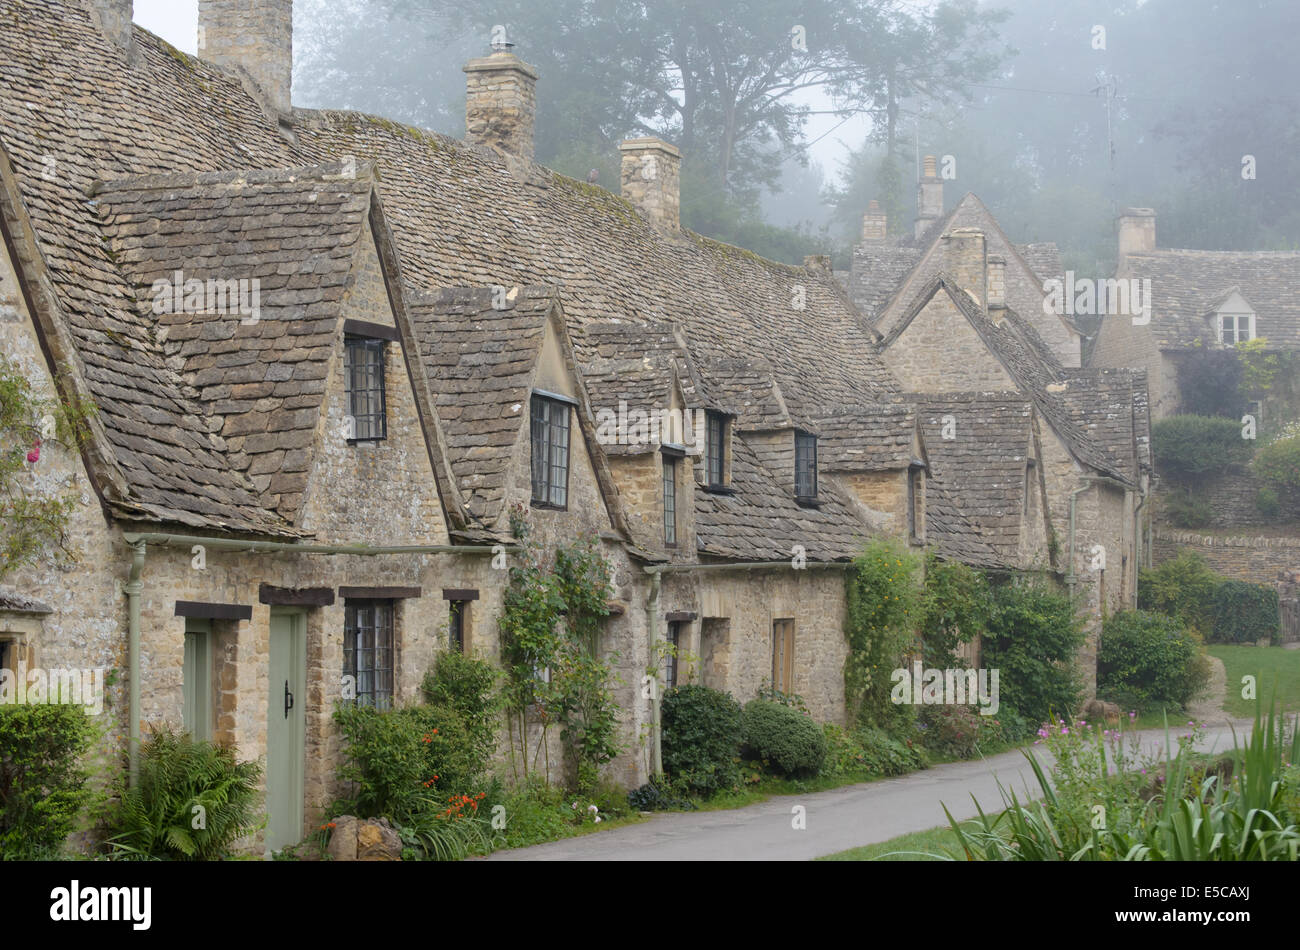 The Arlington Row, honey coloured weavers cottages in the morning fog in the town of Bibury in Gloucestershire in - Stock Image